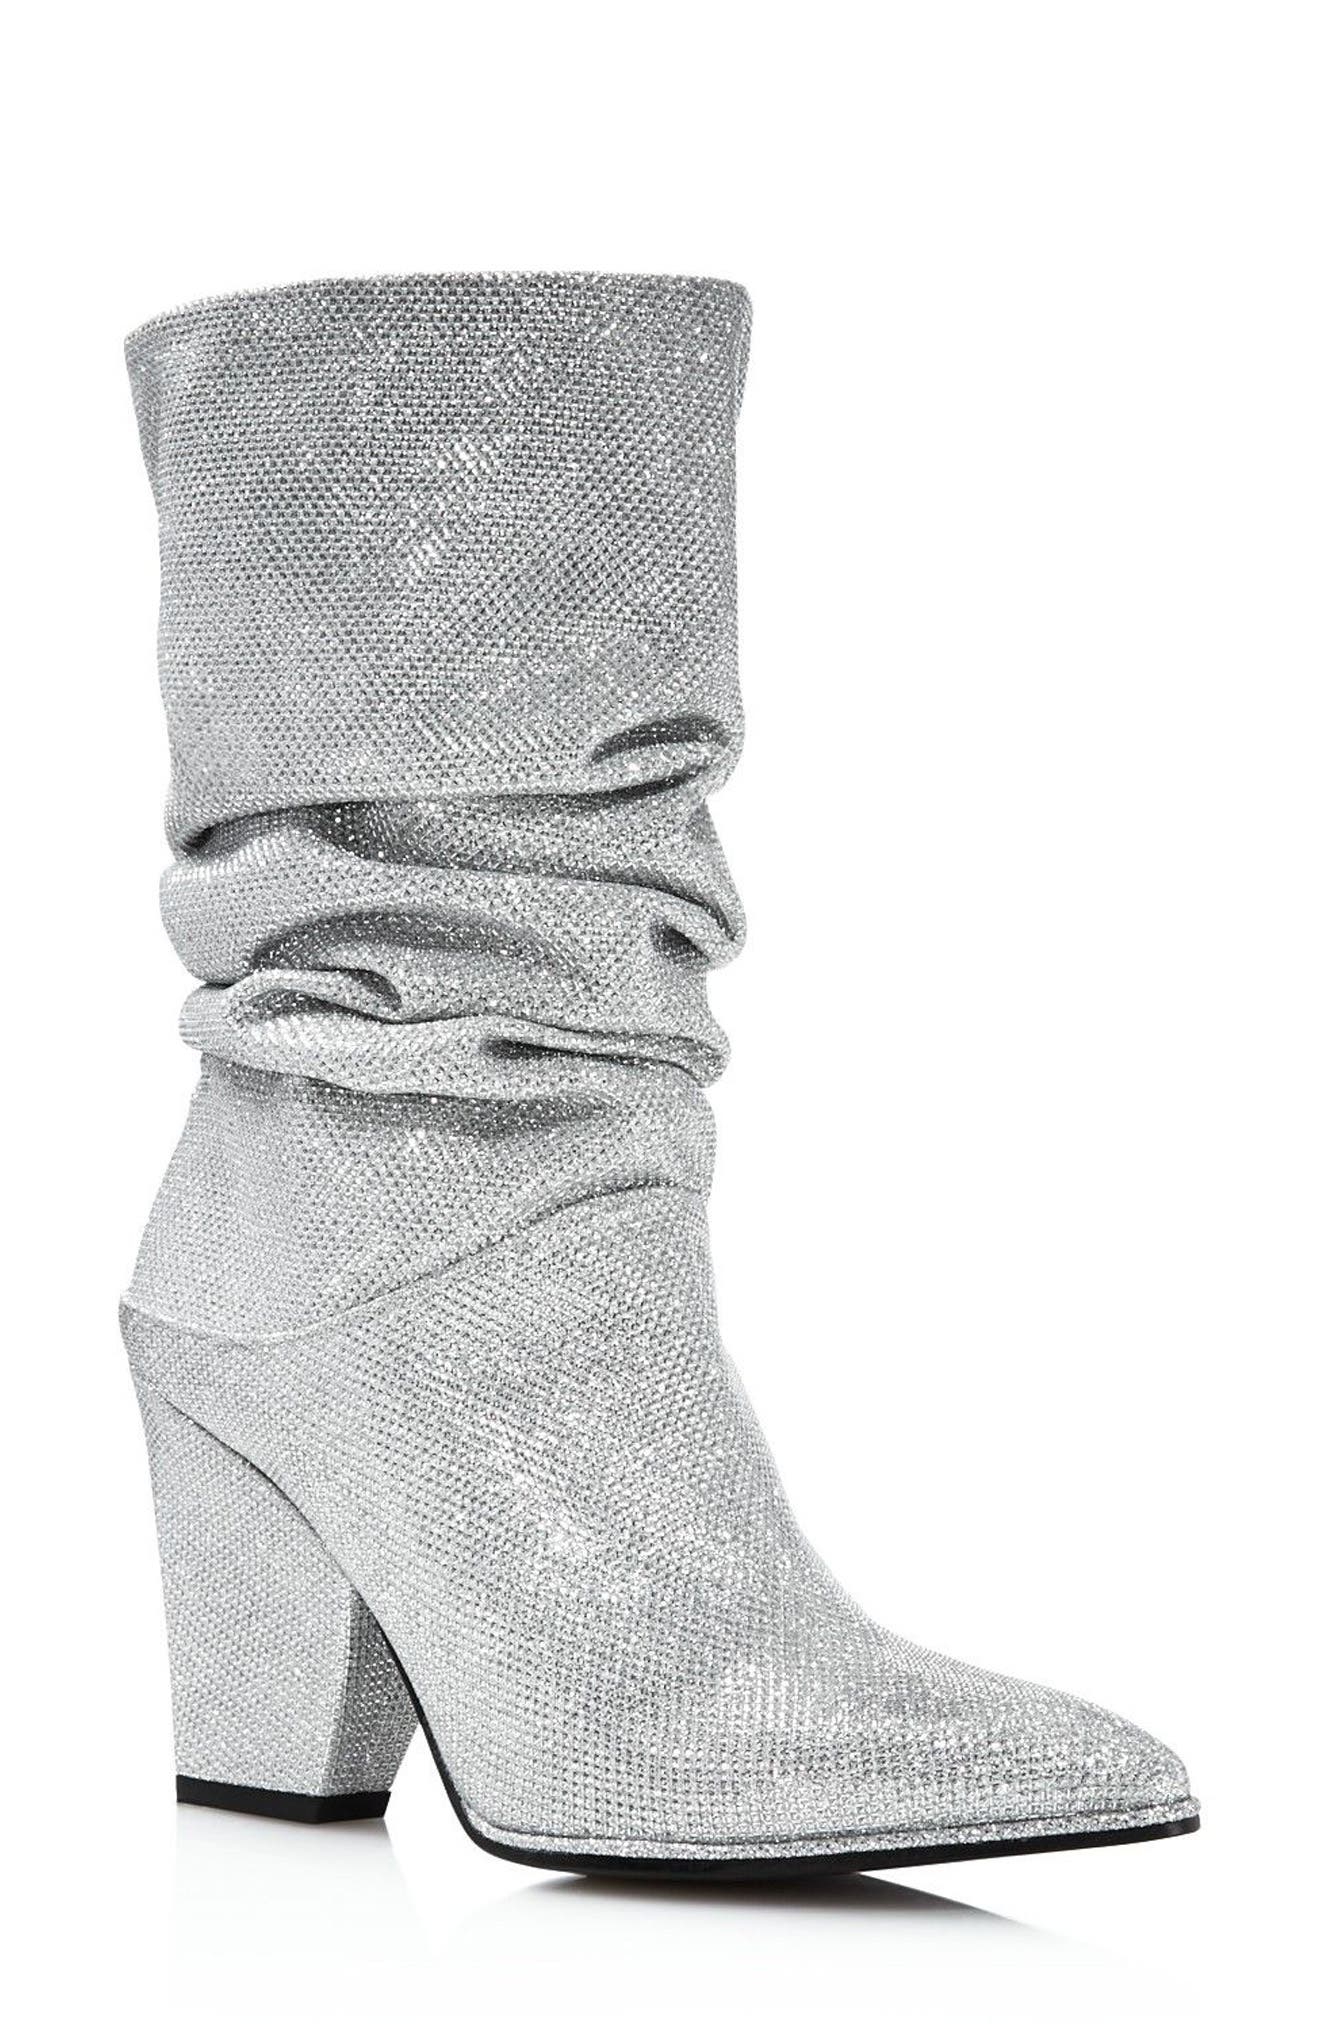 Crush Slouchy Bootie,                         Main,                         color, Silver